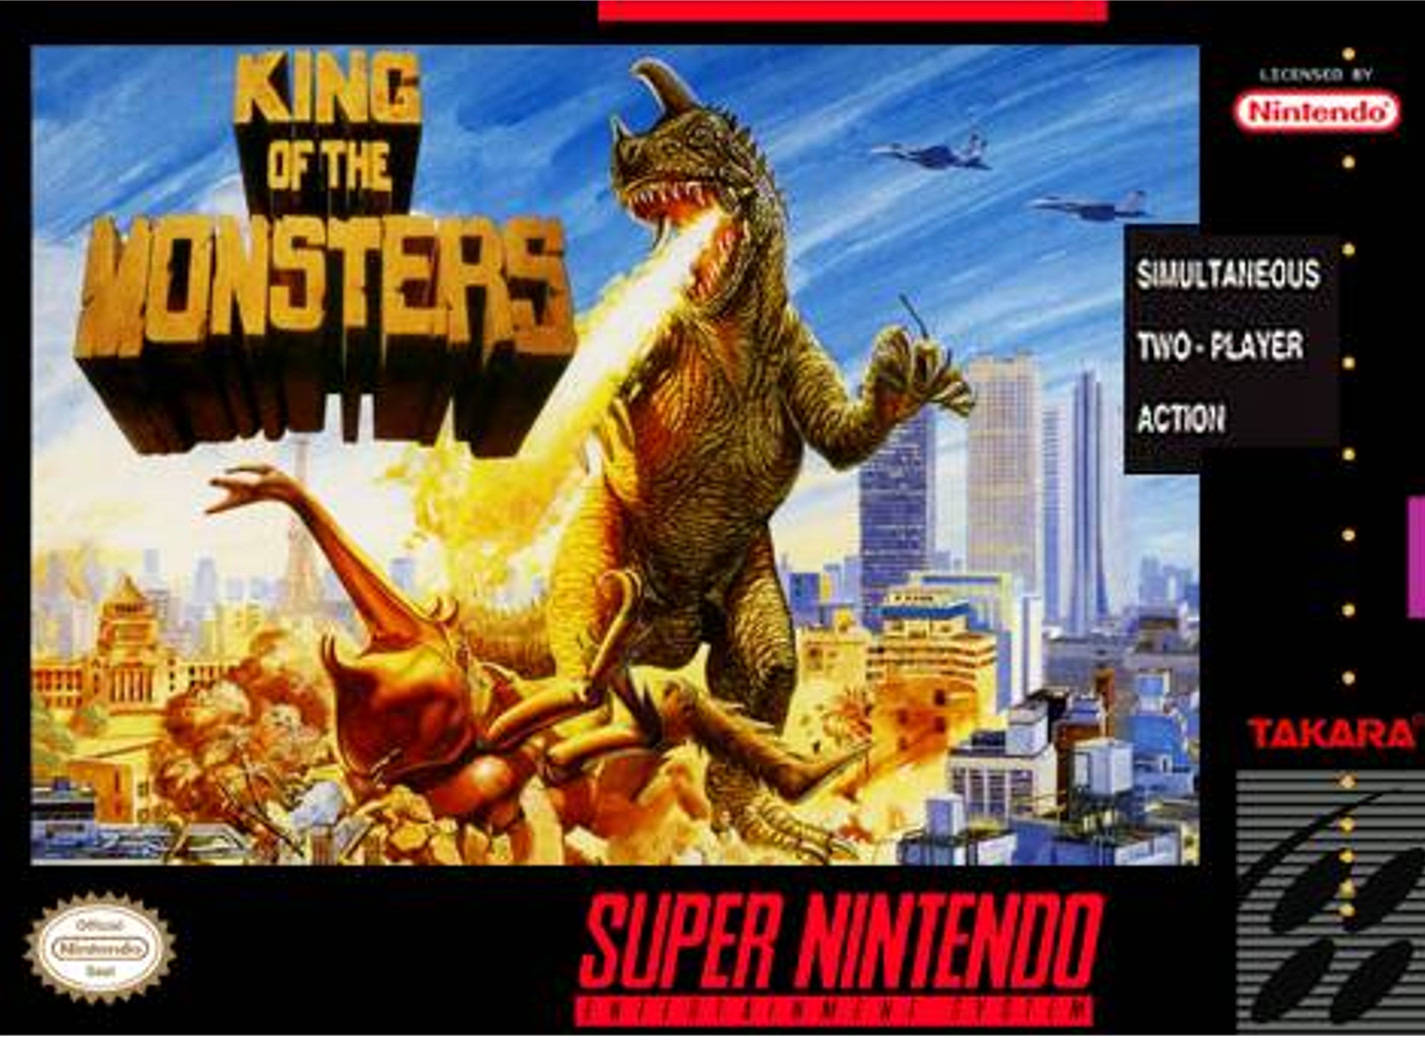 King of the Monsters - GameCorp Podcast